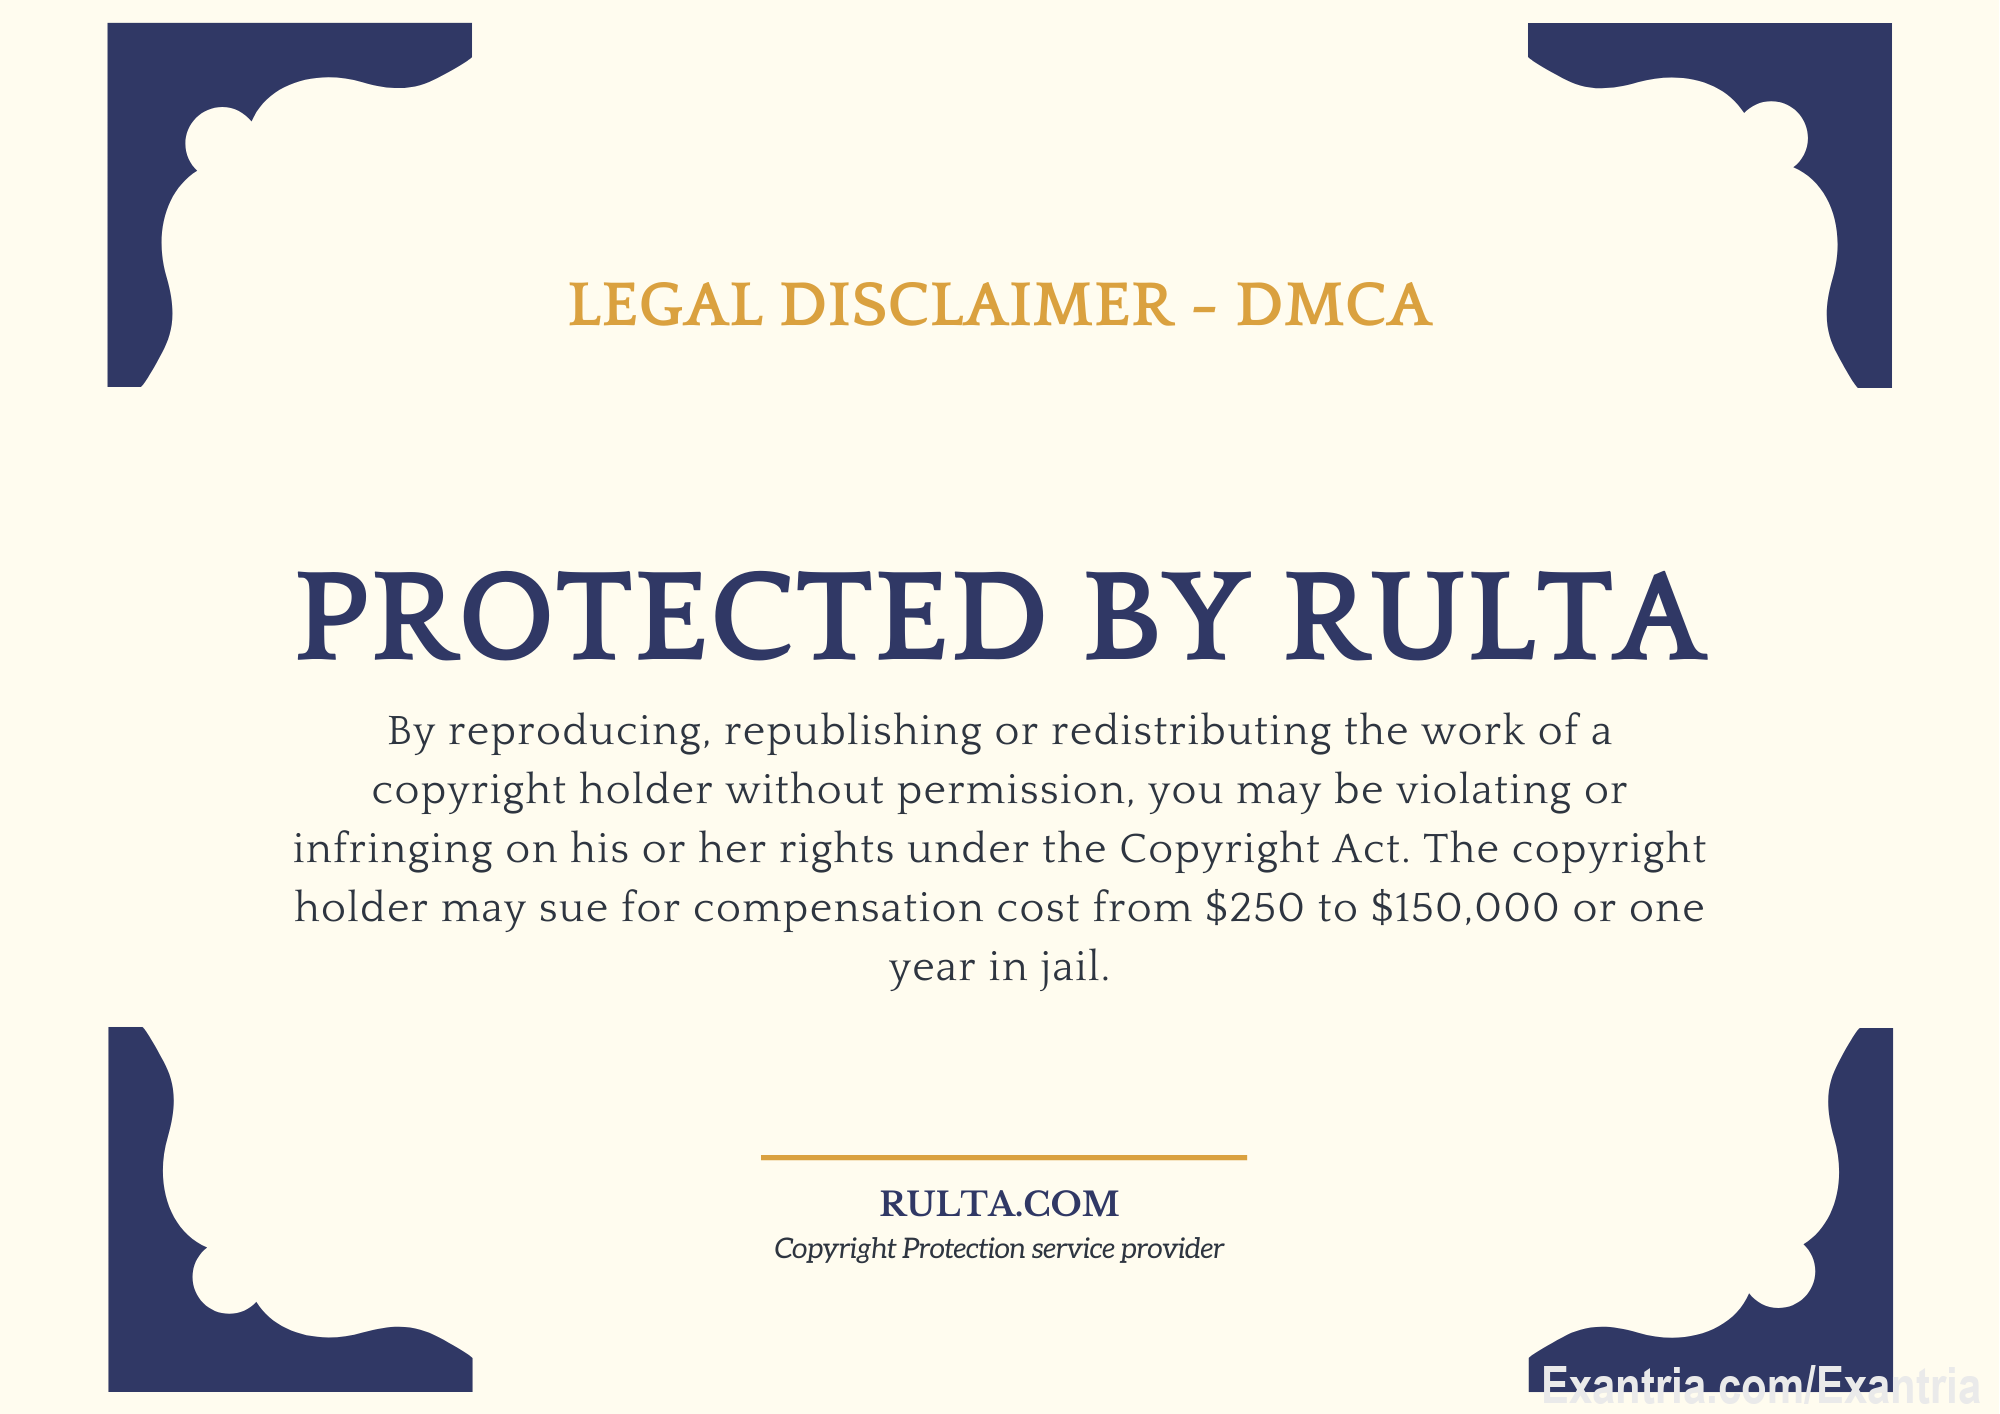 Happy to announce we have started to use DMCA copy-right protection service (legal takedown service) from Rulta. They will go after all Thieves stealing creator's content and publishing it illegally online. VIP Creators, please contact our staff for details and to apply for the Protection program. We are piloting it now with few of our VIP Creators.